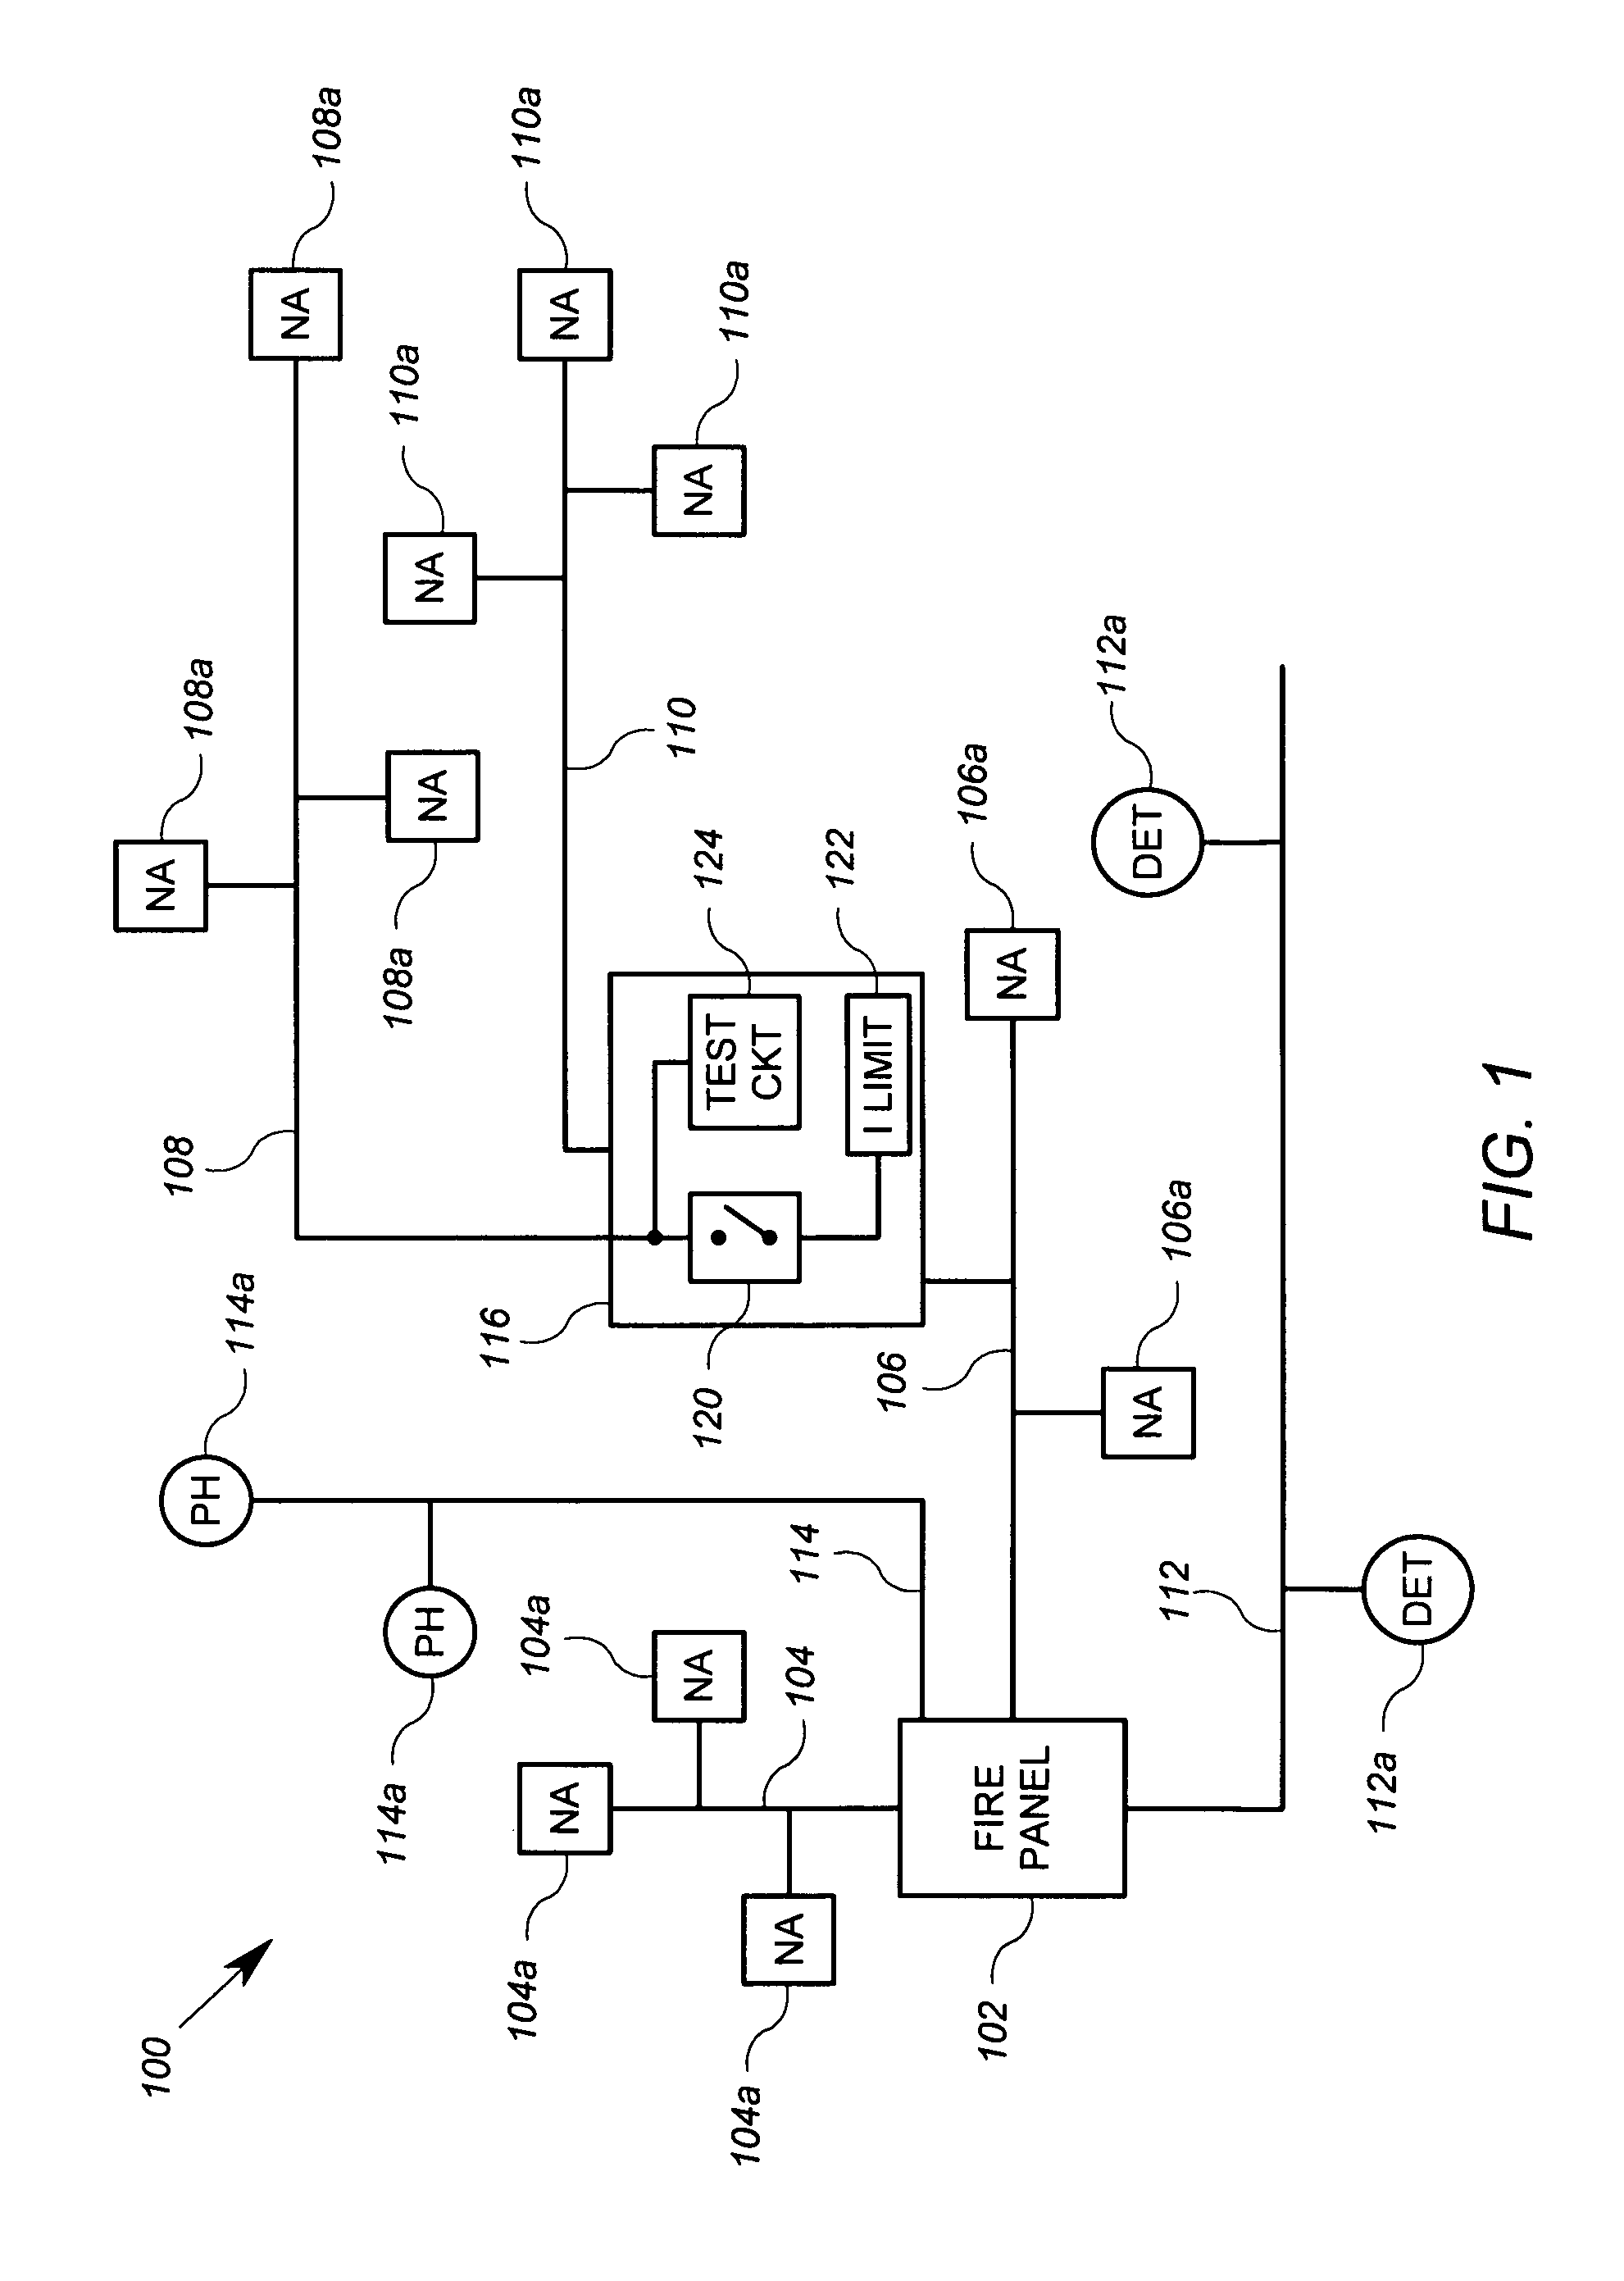 Patent Us8477042 Apparatus For Signaling Different Notification Positive High Voltage Hot Swap Controller With Opencircuit Detect Drawing